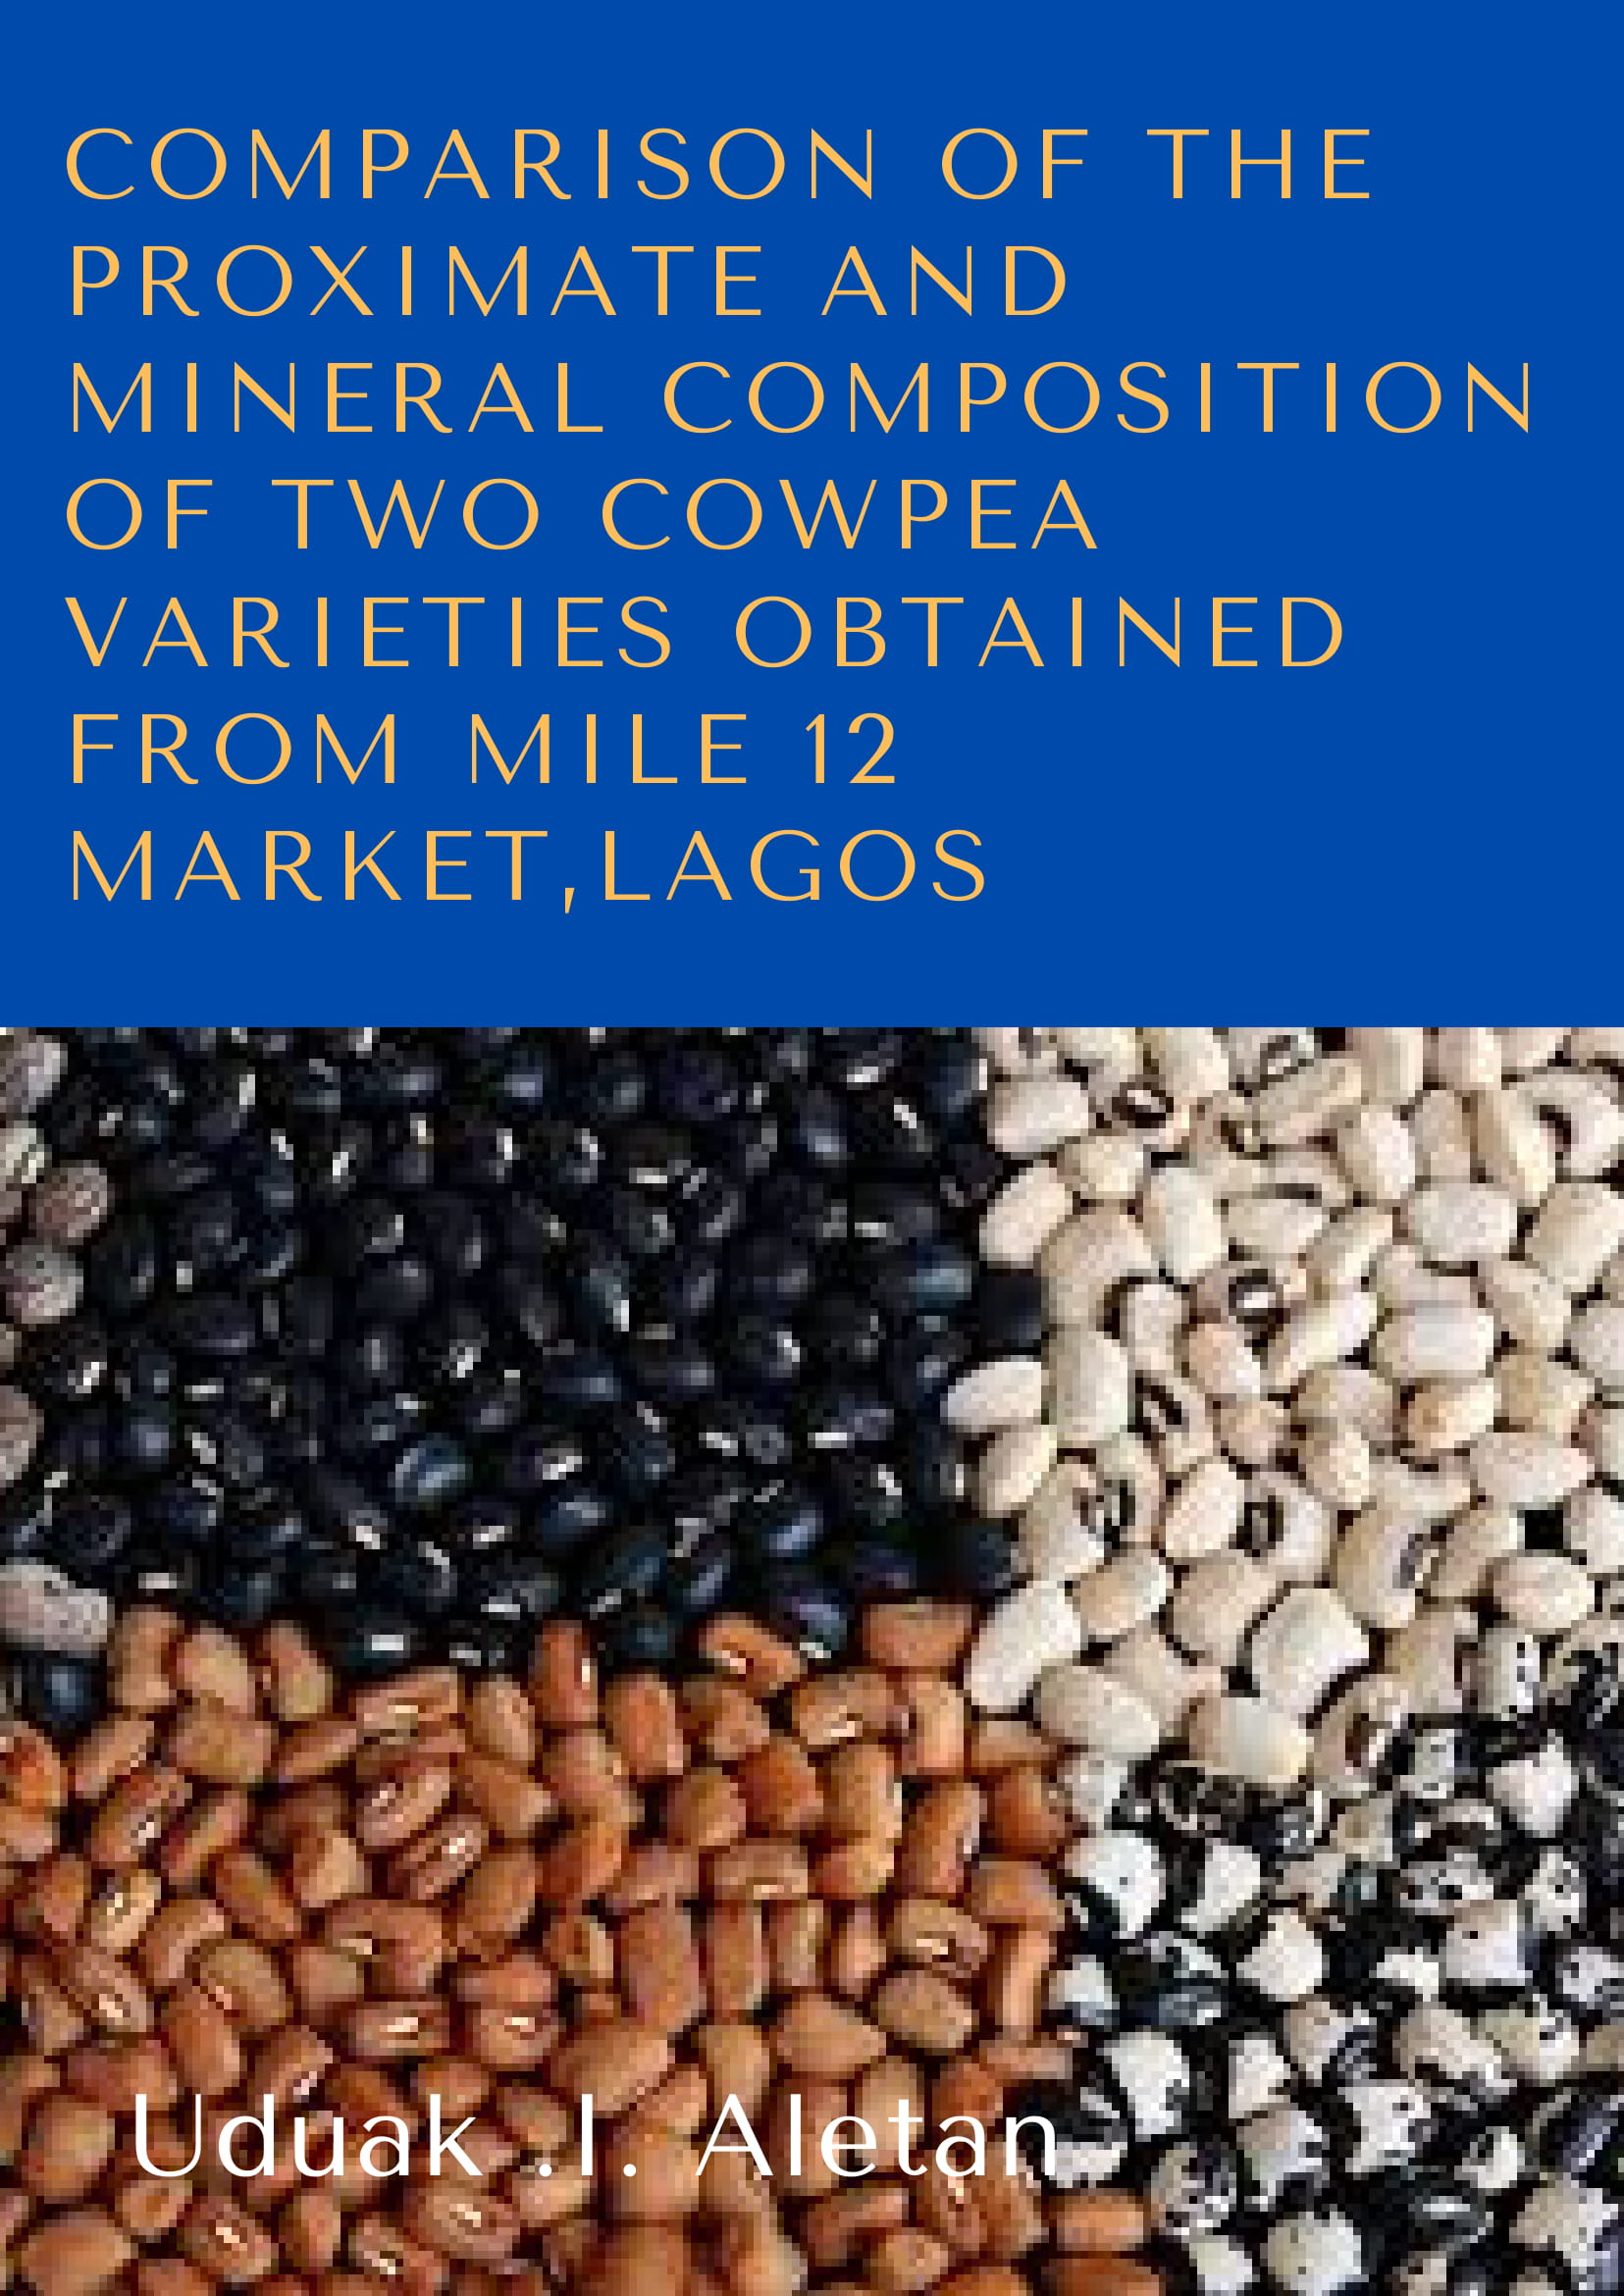 Comparison of the Proximate and Mineral Composition of two Cowpea Varieties obtained from Mile 12 Market,Lagos image